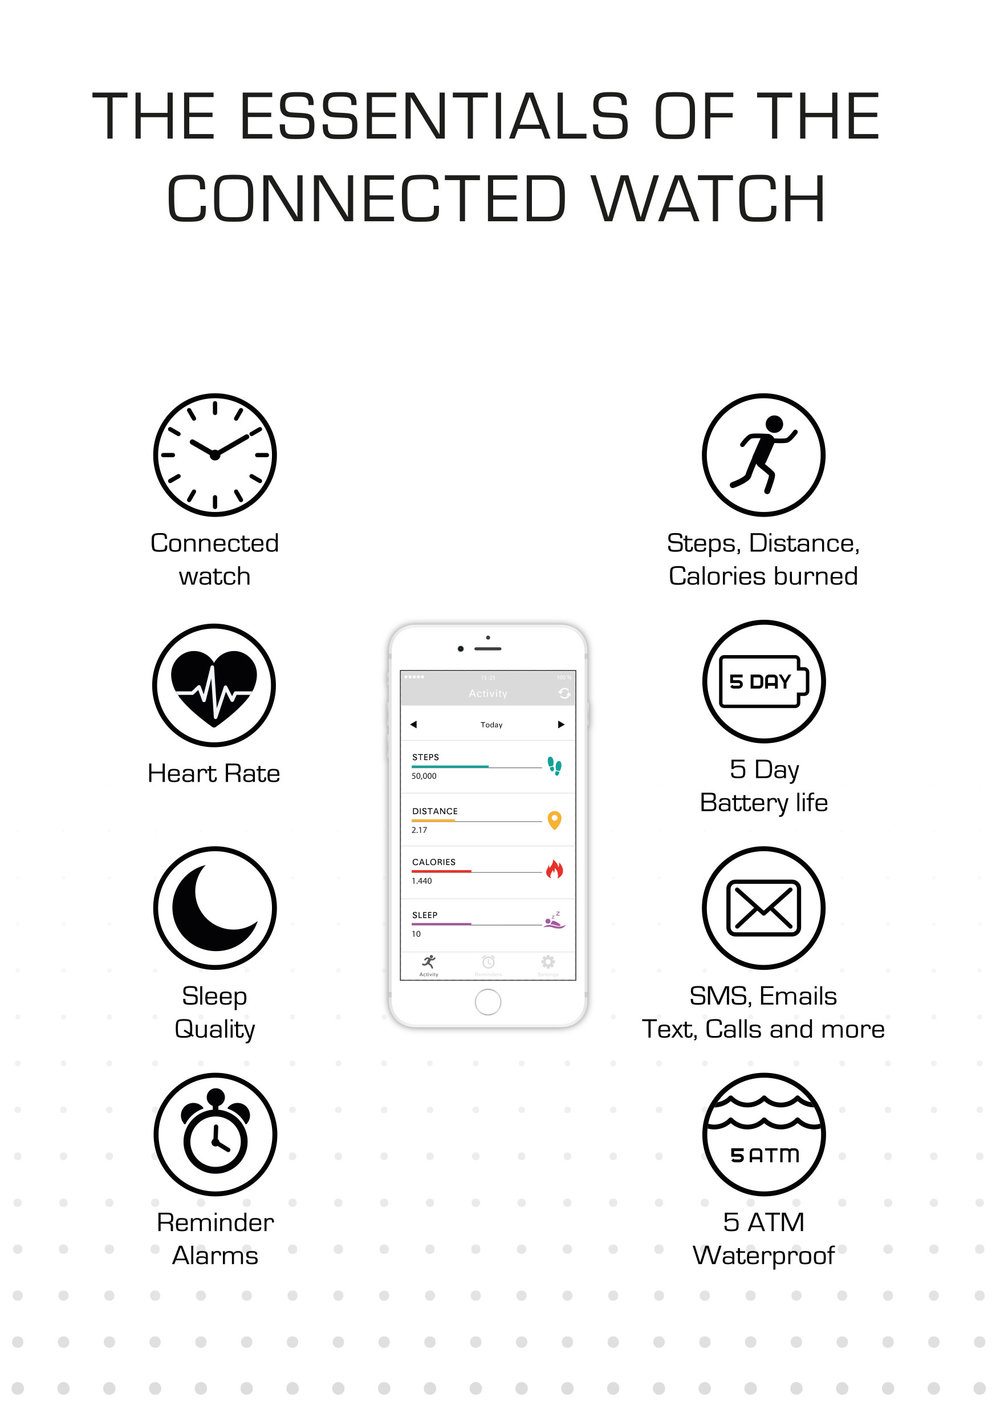 bergson-connected-watch-Icons.jpg